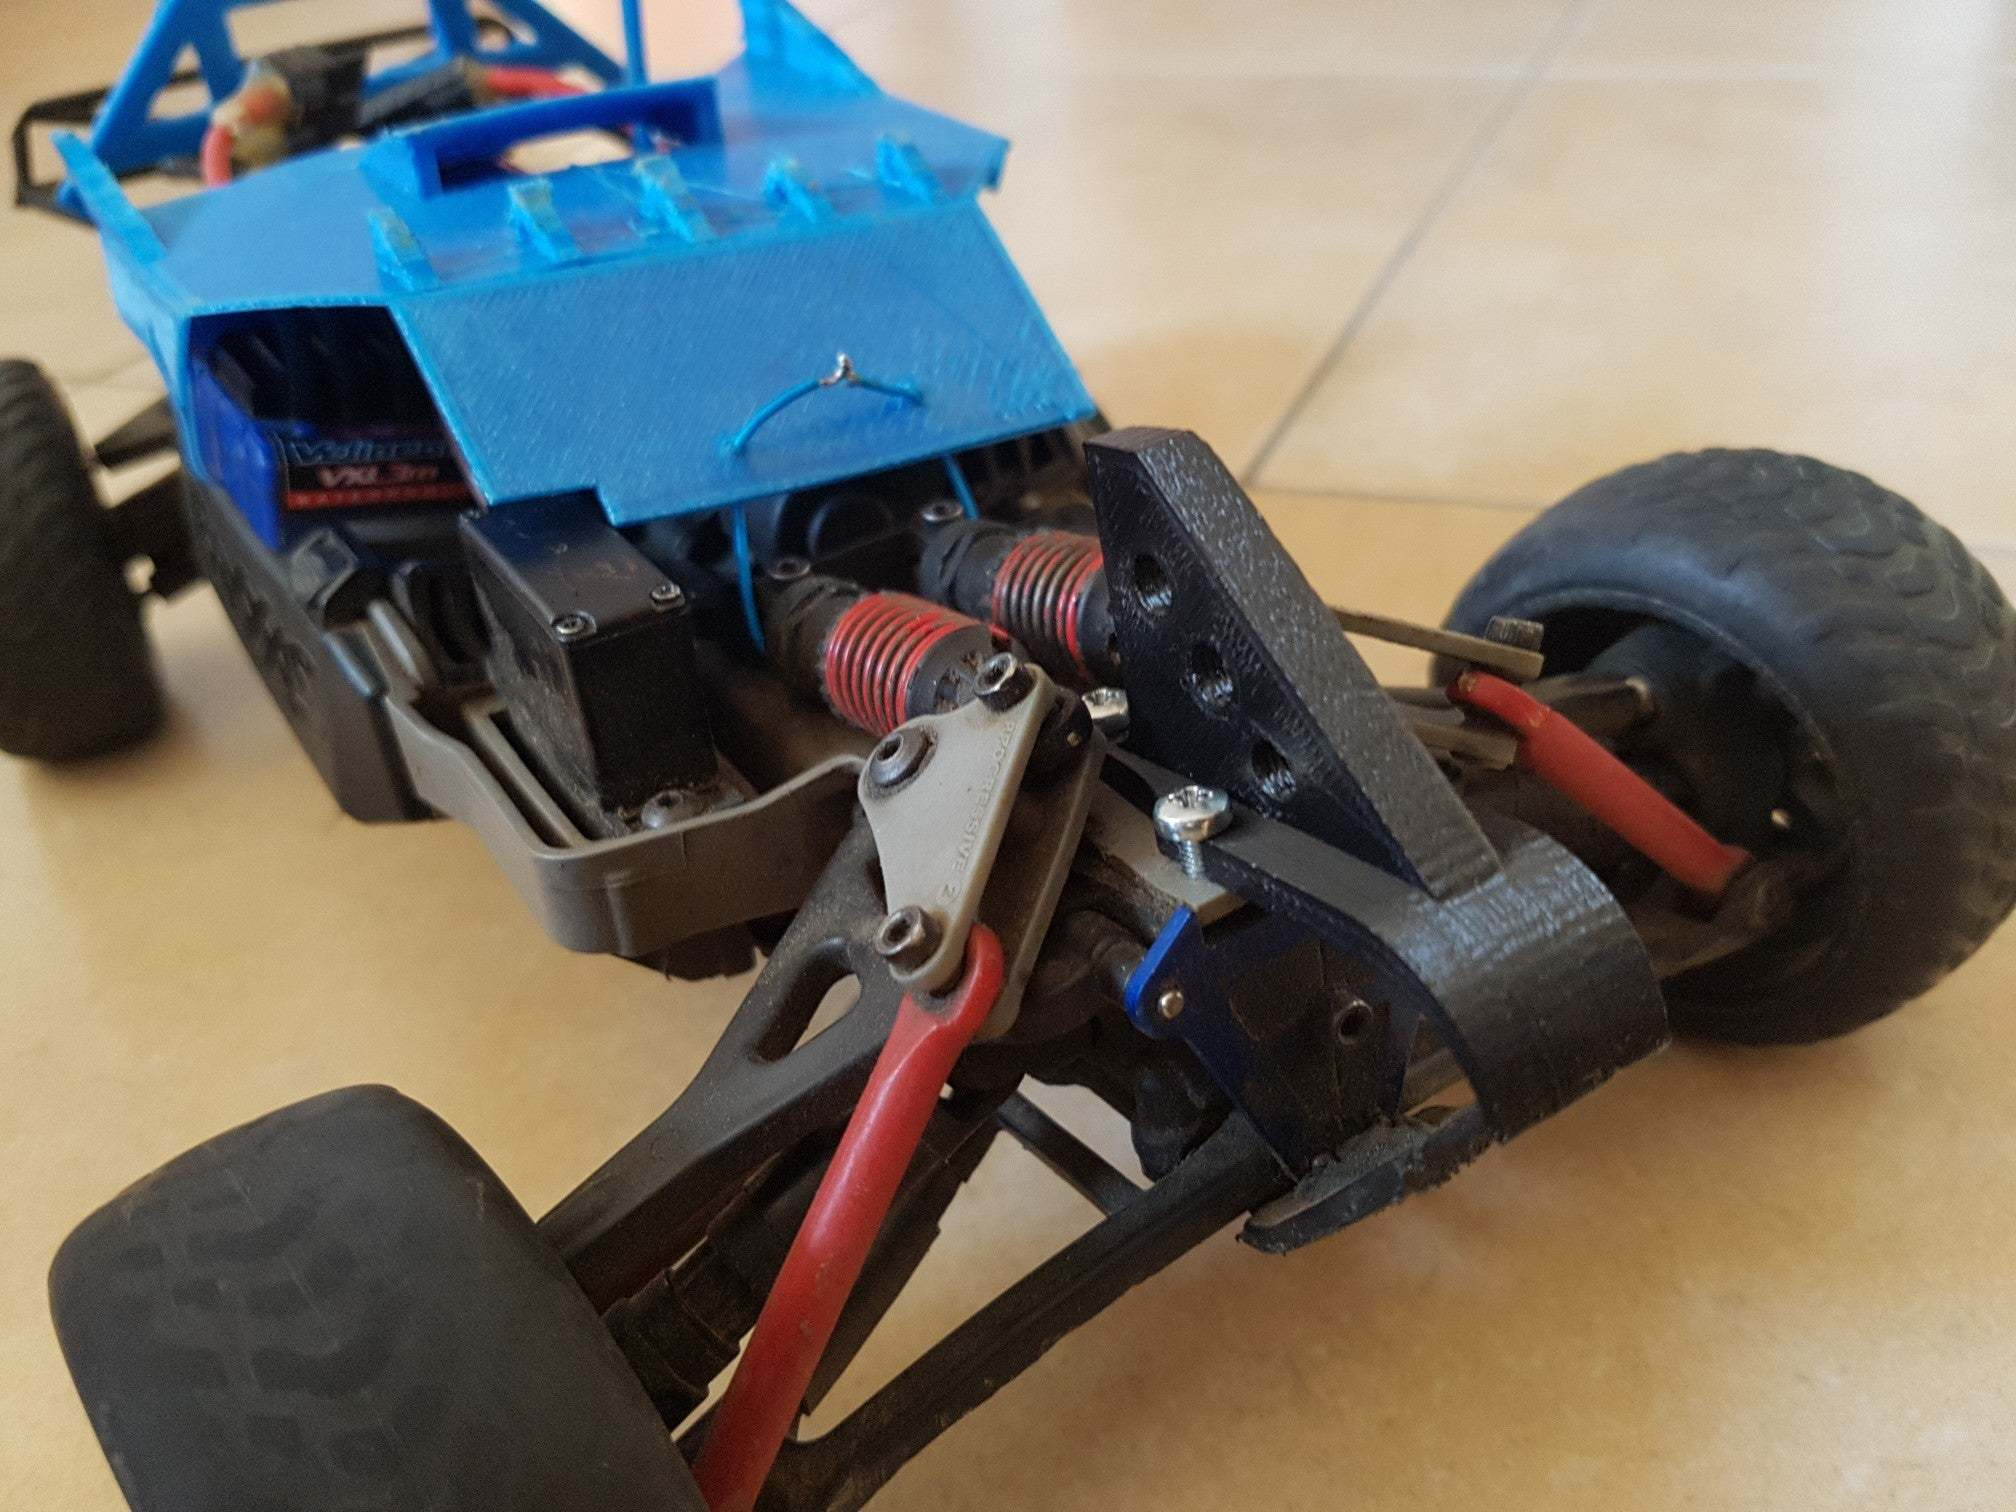 20200407_172043_copy_2016x1512.jpg Download free STL file Traxxas 1/16 Chassis Mod • 3D printable design, Gophy